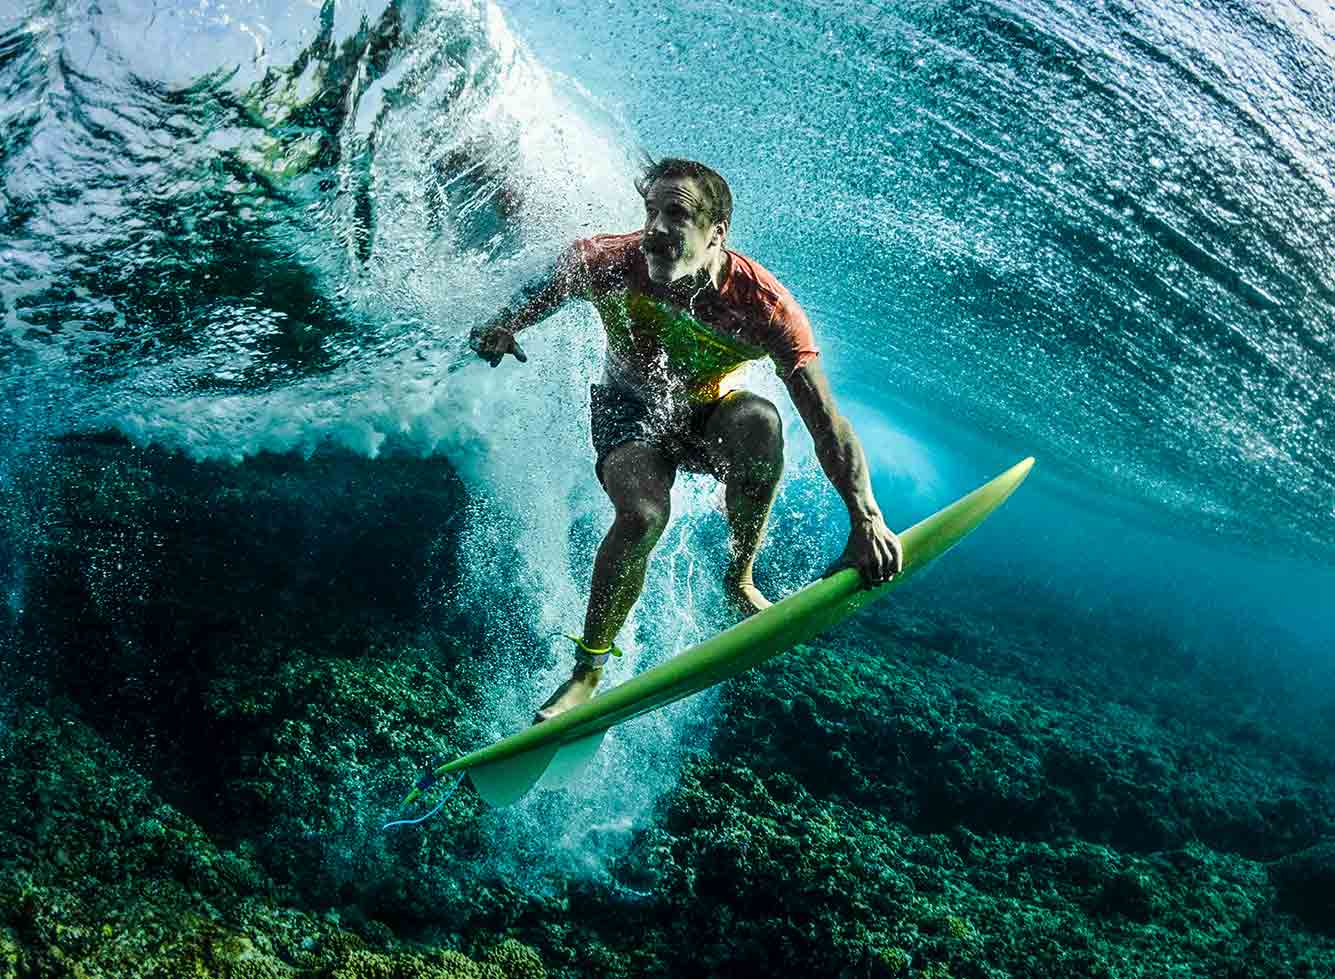 guy surfing underwater